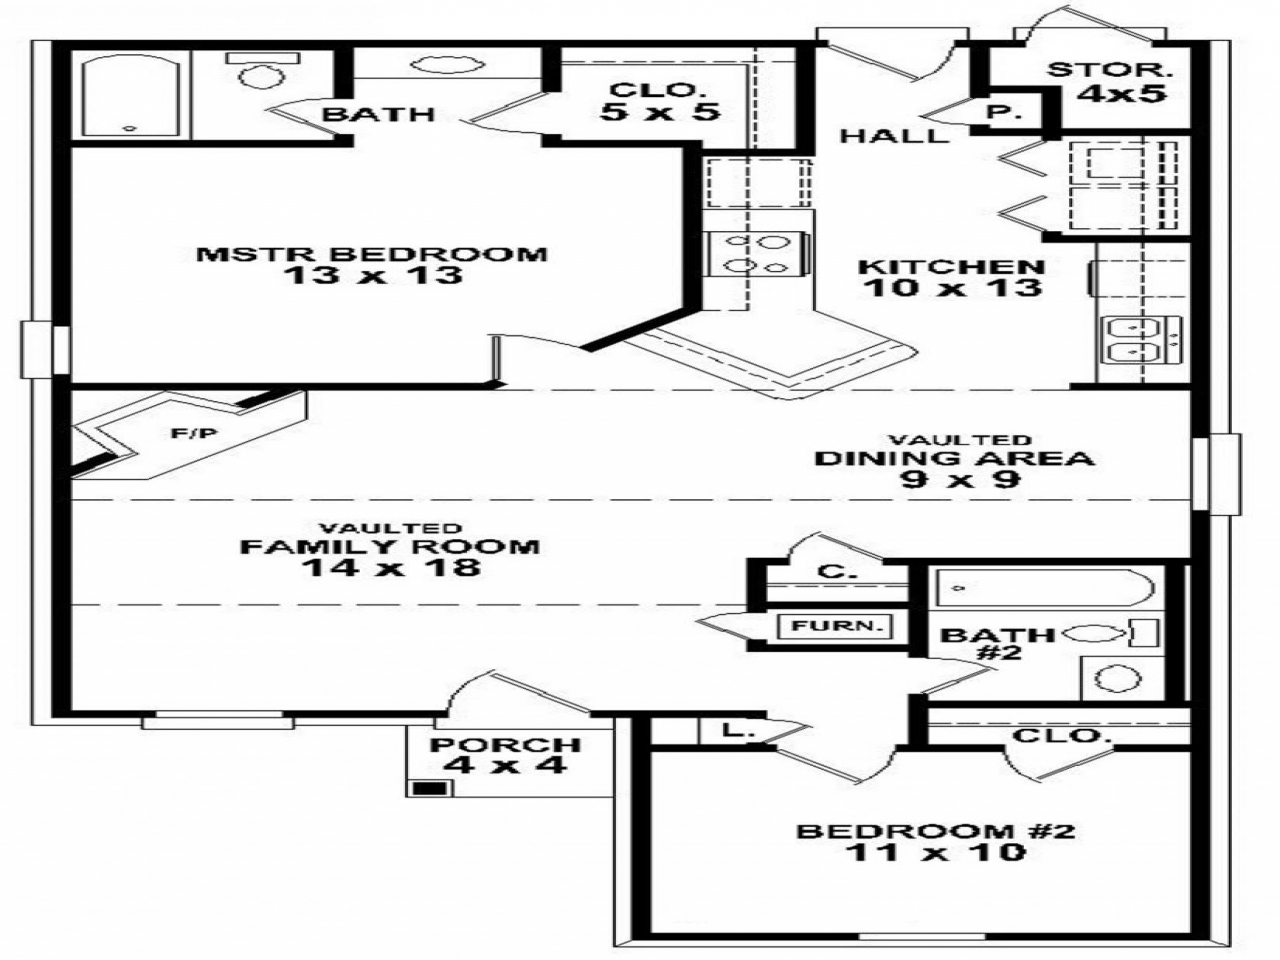 simple 2 bedroom house floor plans small two bedroom house plans simple house plan. Black Bedroom Furniture Sets. Home Design Ideas